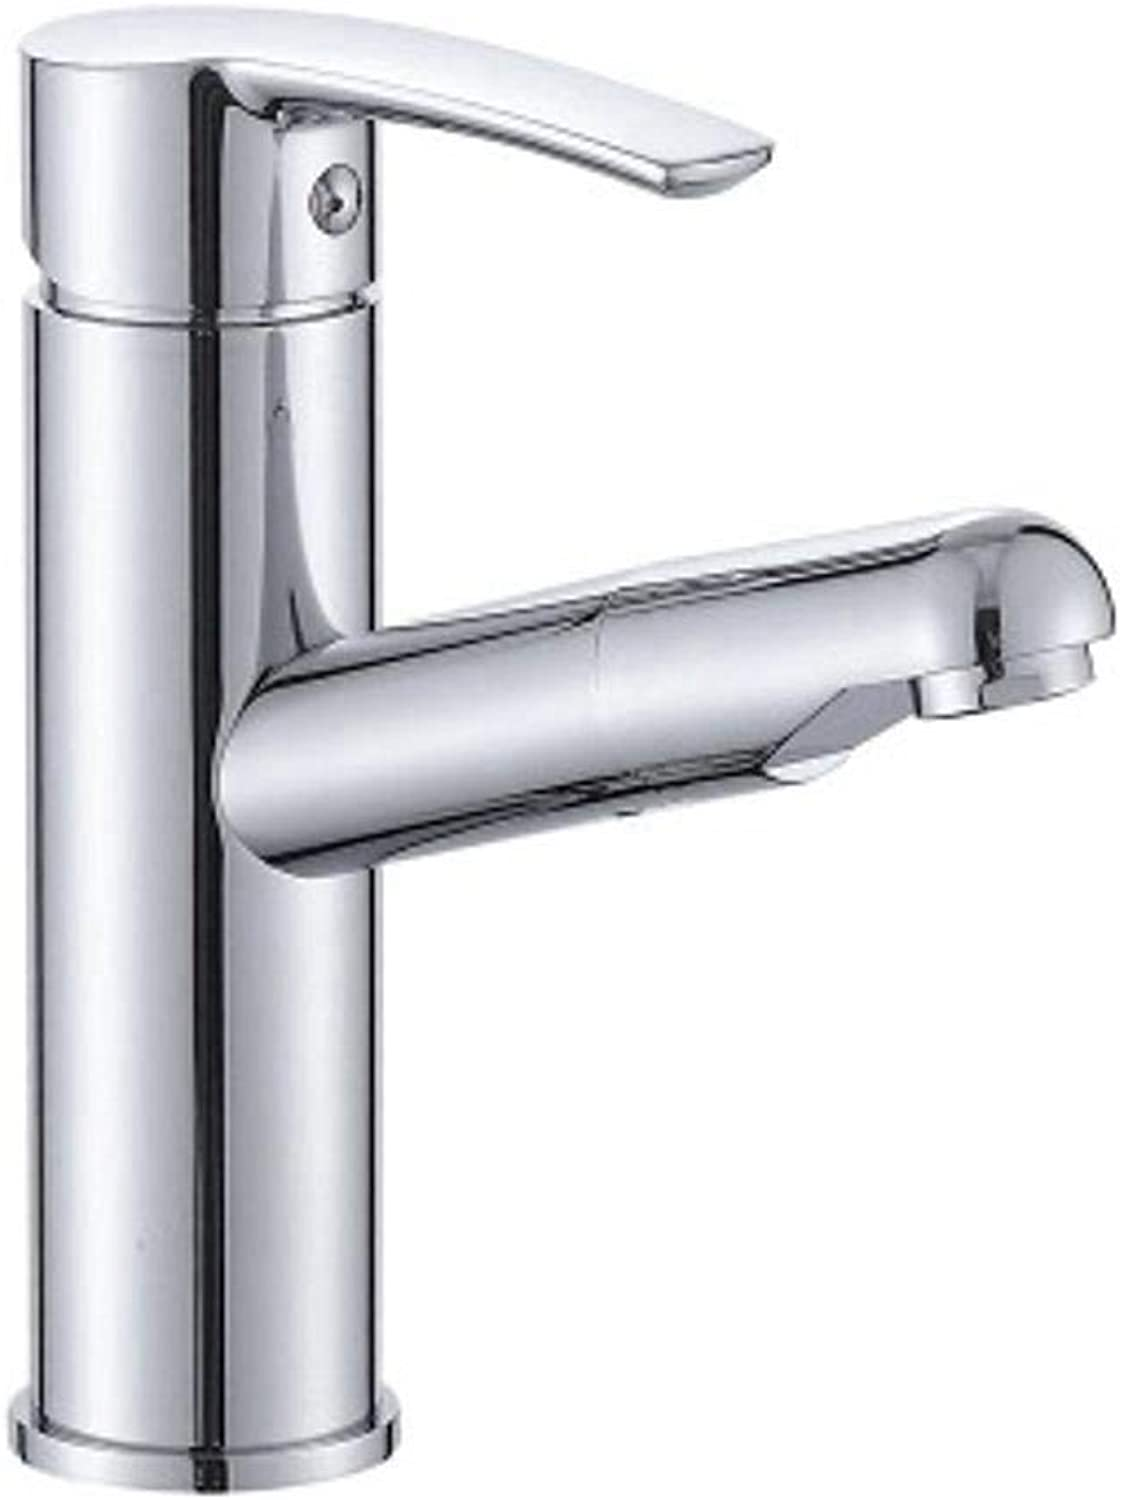 Tap Kitchen Pull Out,Pull-Out Basin hot and Cold Faucet washbasin Basin Bathroom Cabinet with Telescopic Hose Shampoo Faucet